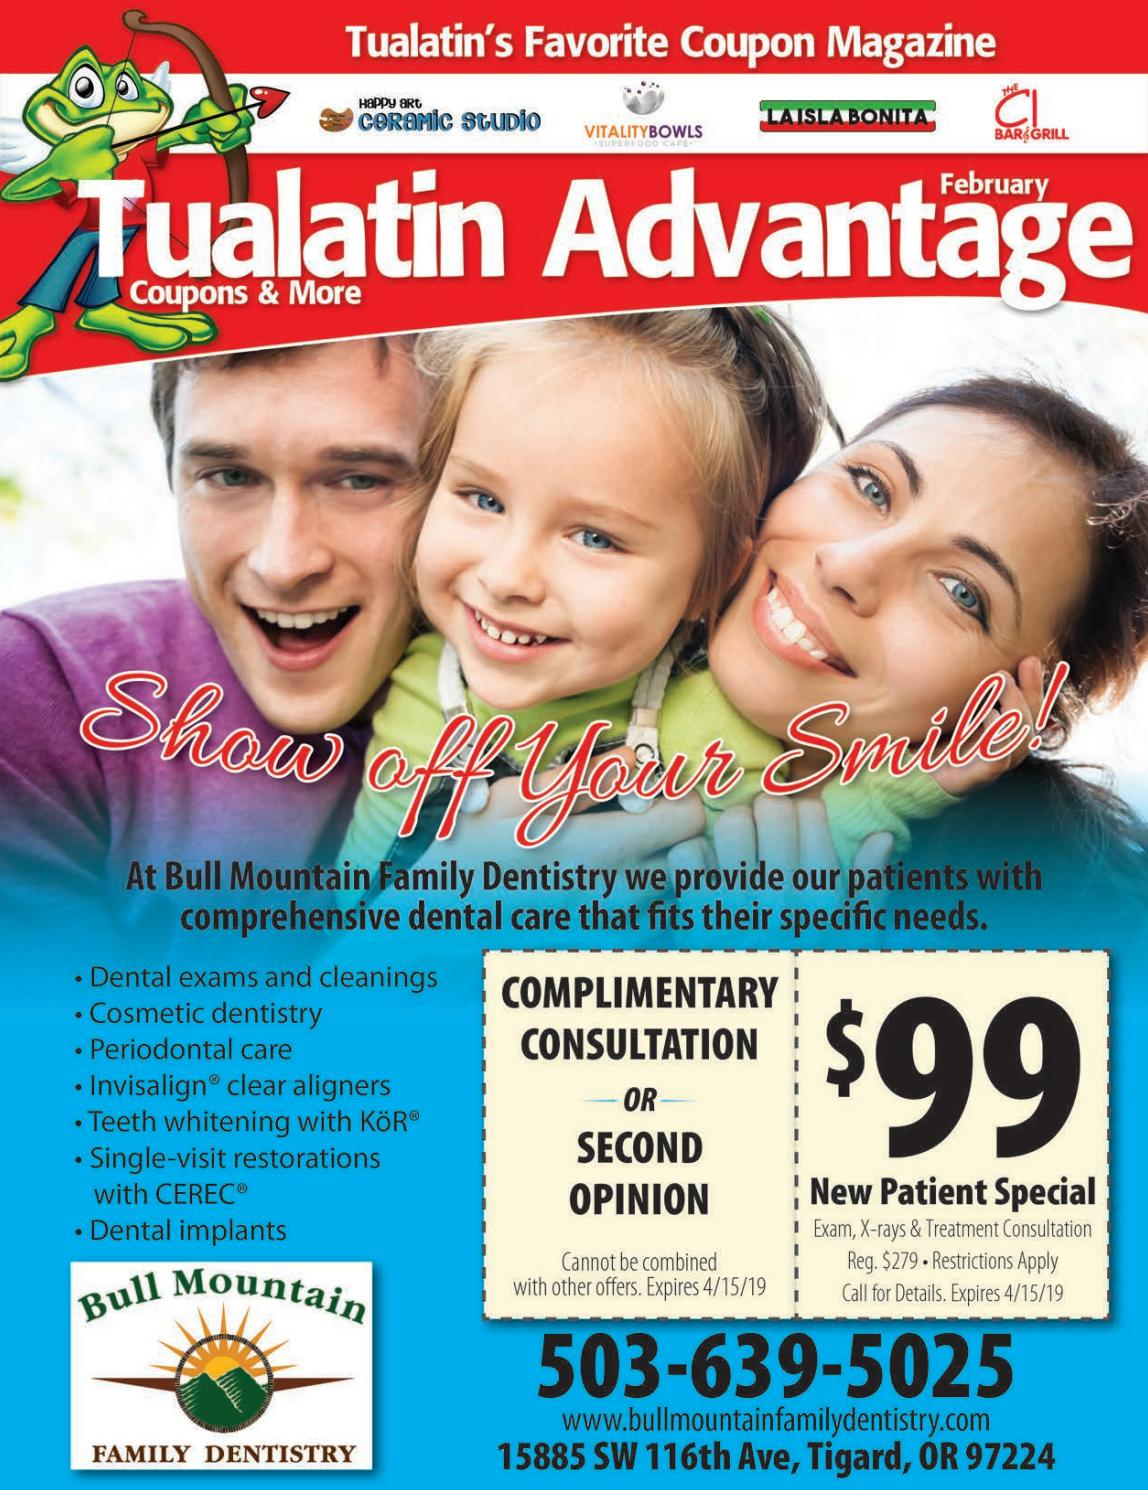 Tualatin Advantage Guide - February 2019 by Active Media